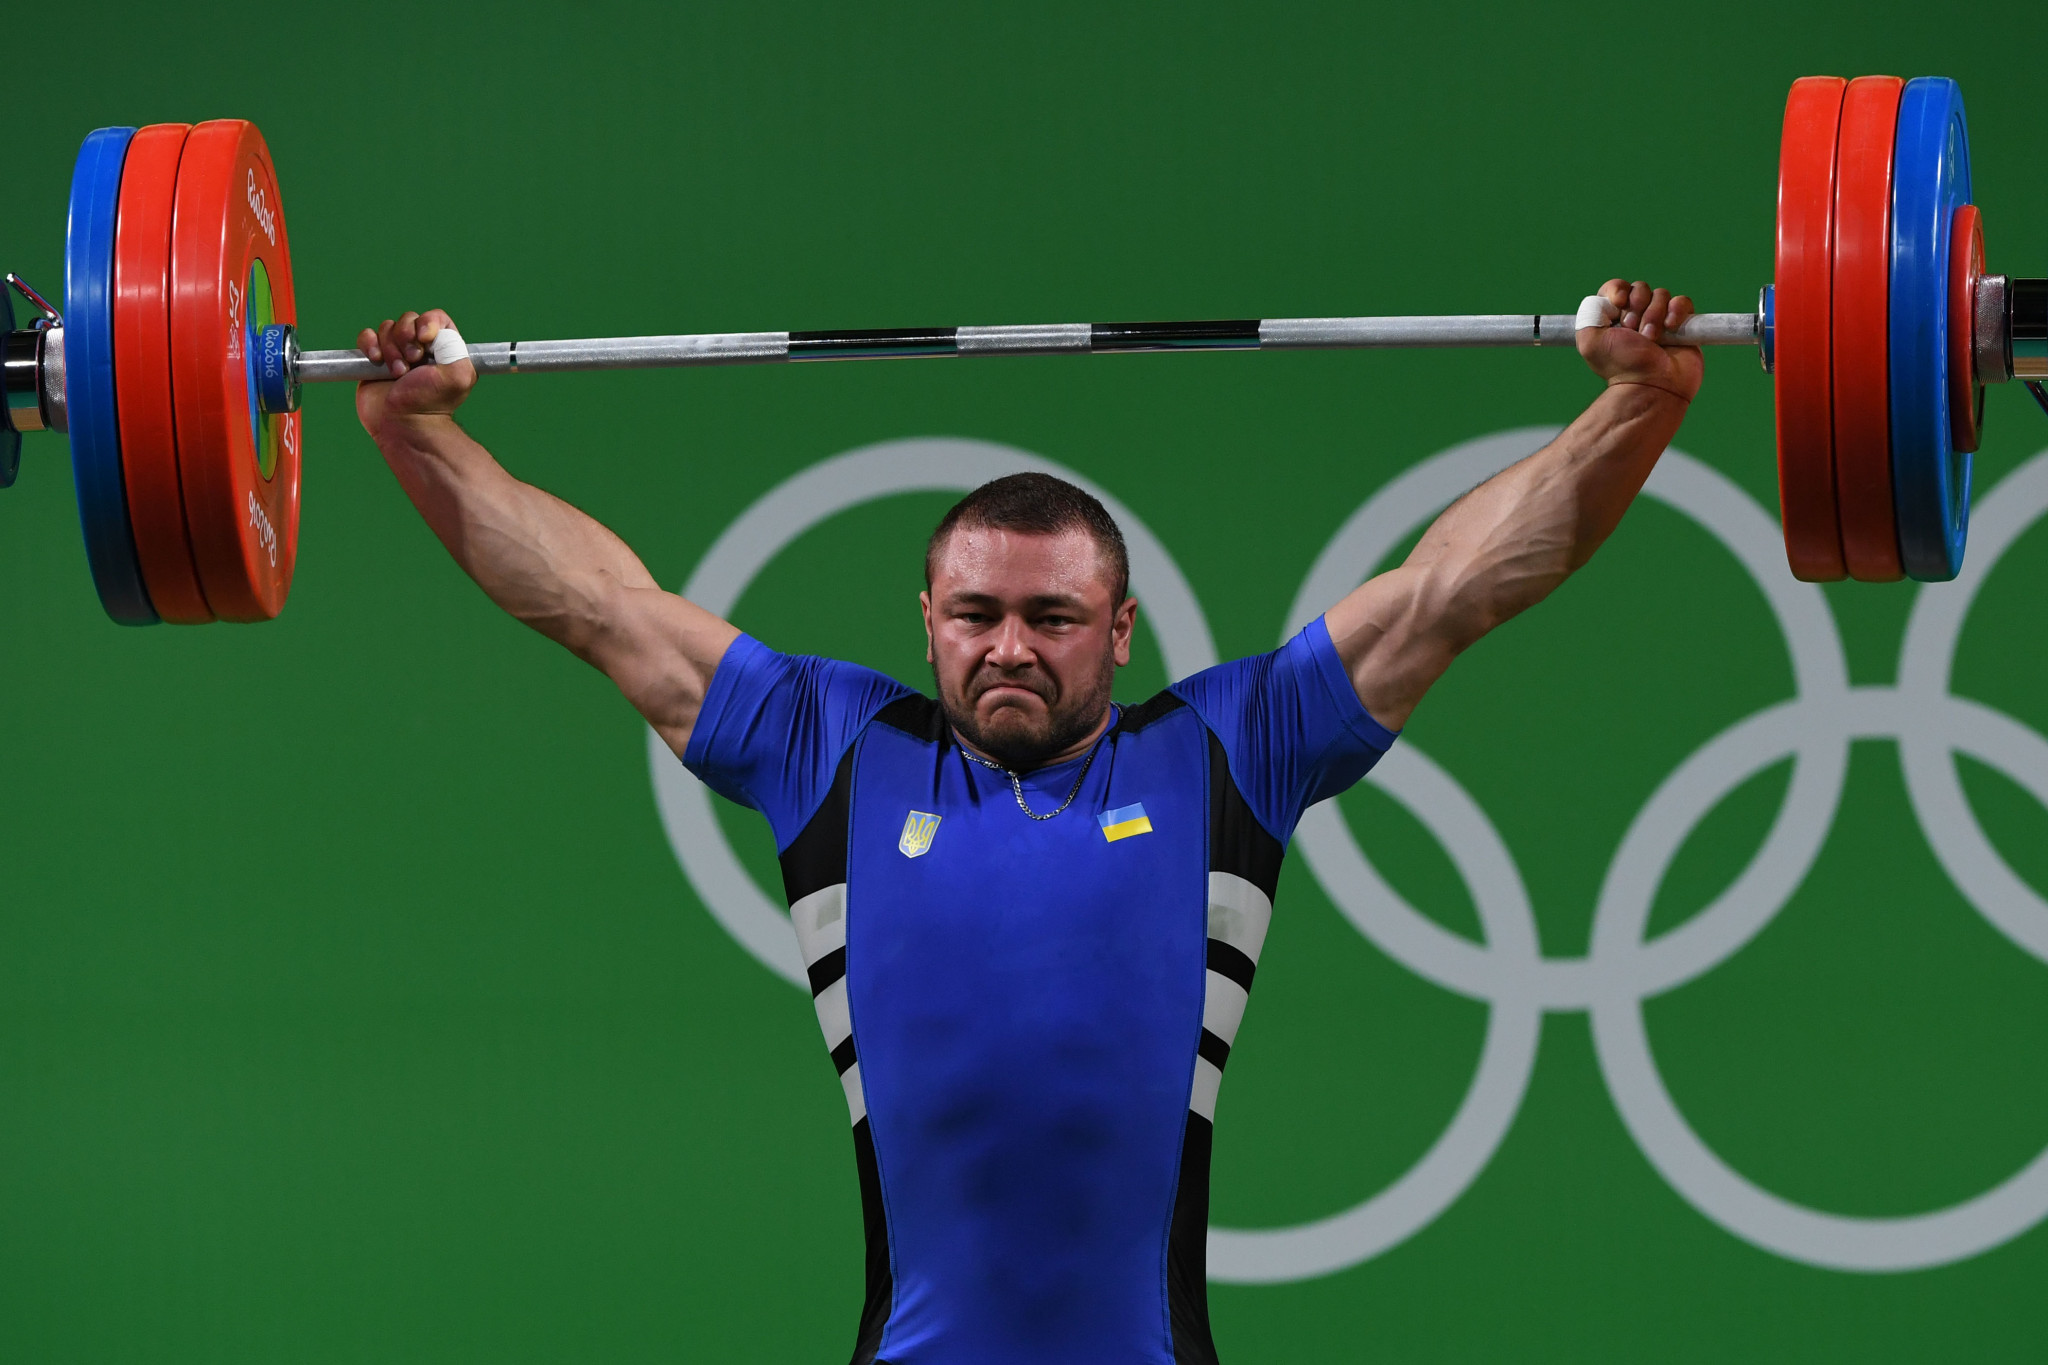 Olympic weightlifting medal contender Chumak suspended for allegedly trying to bribe testers